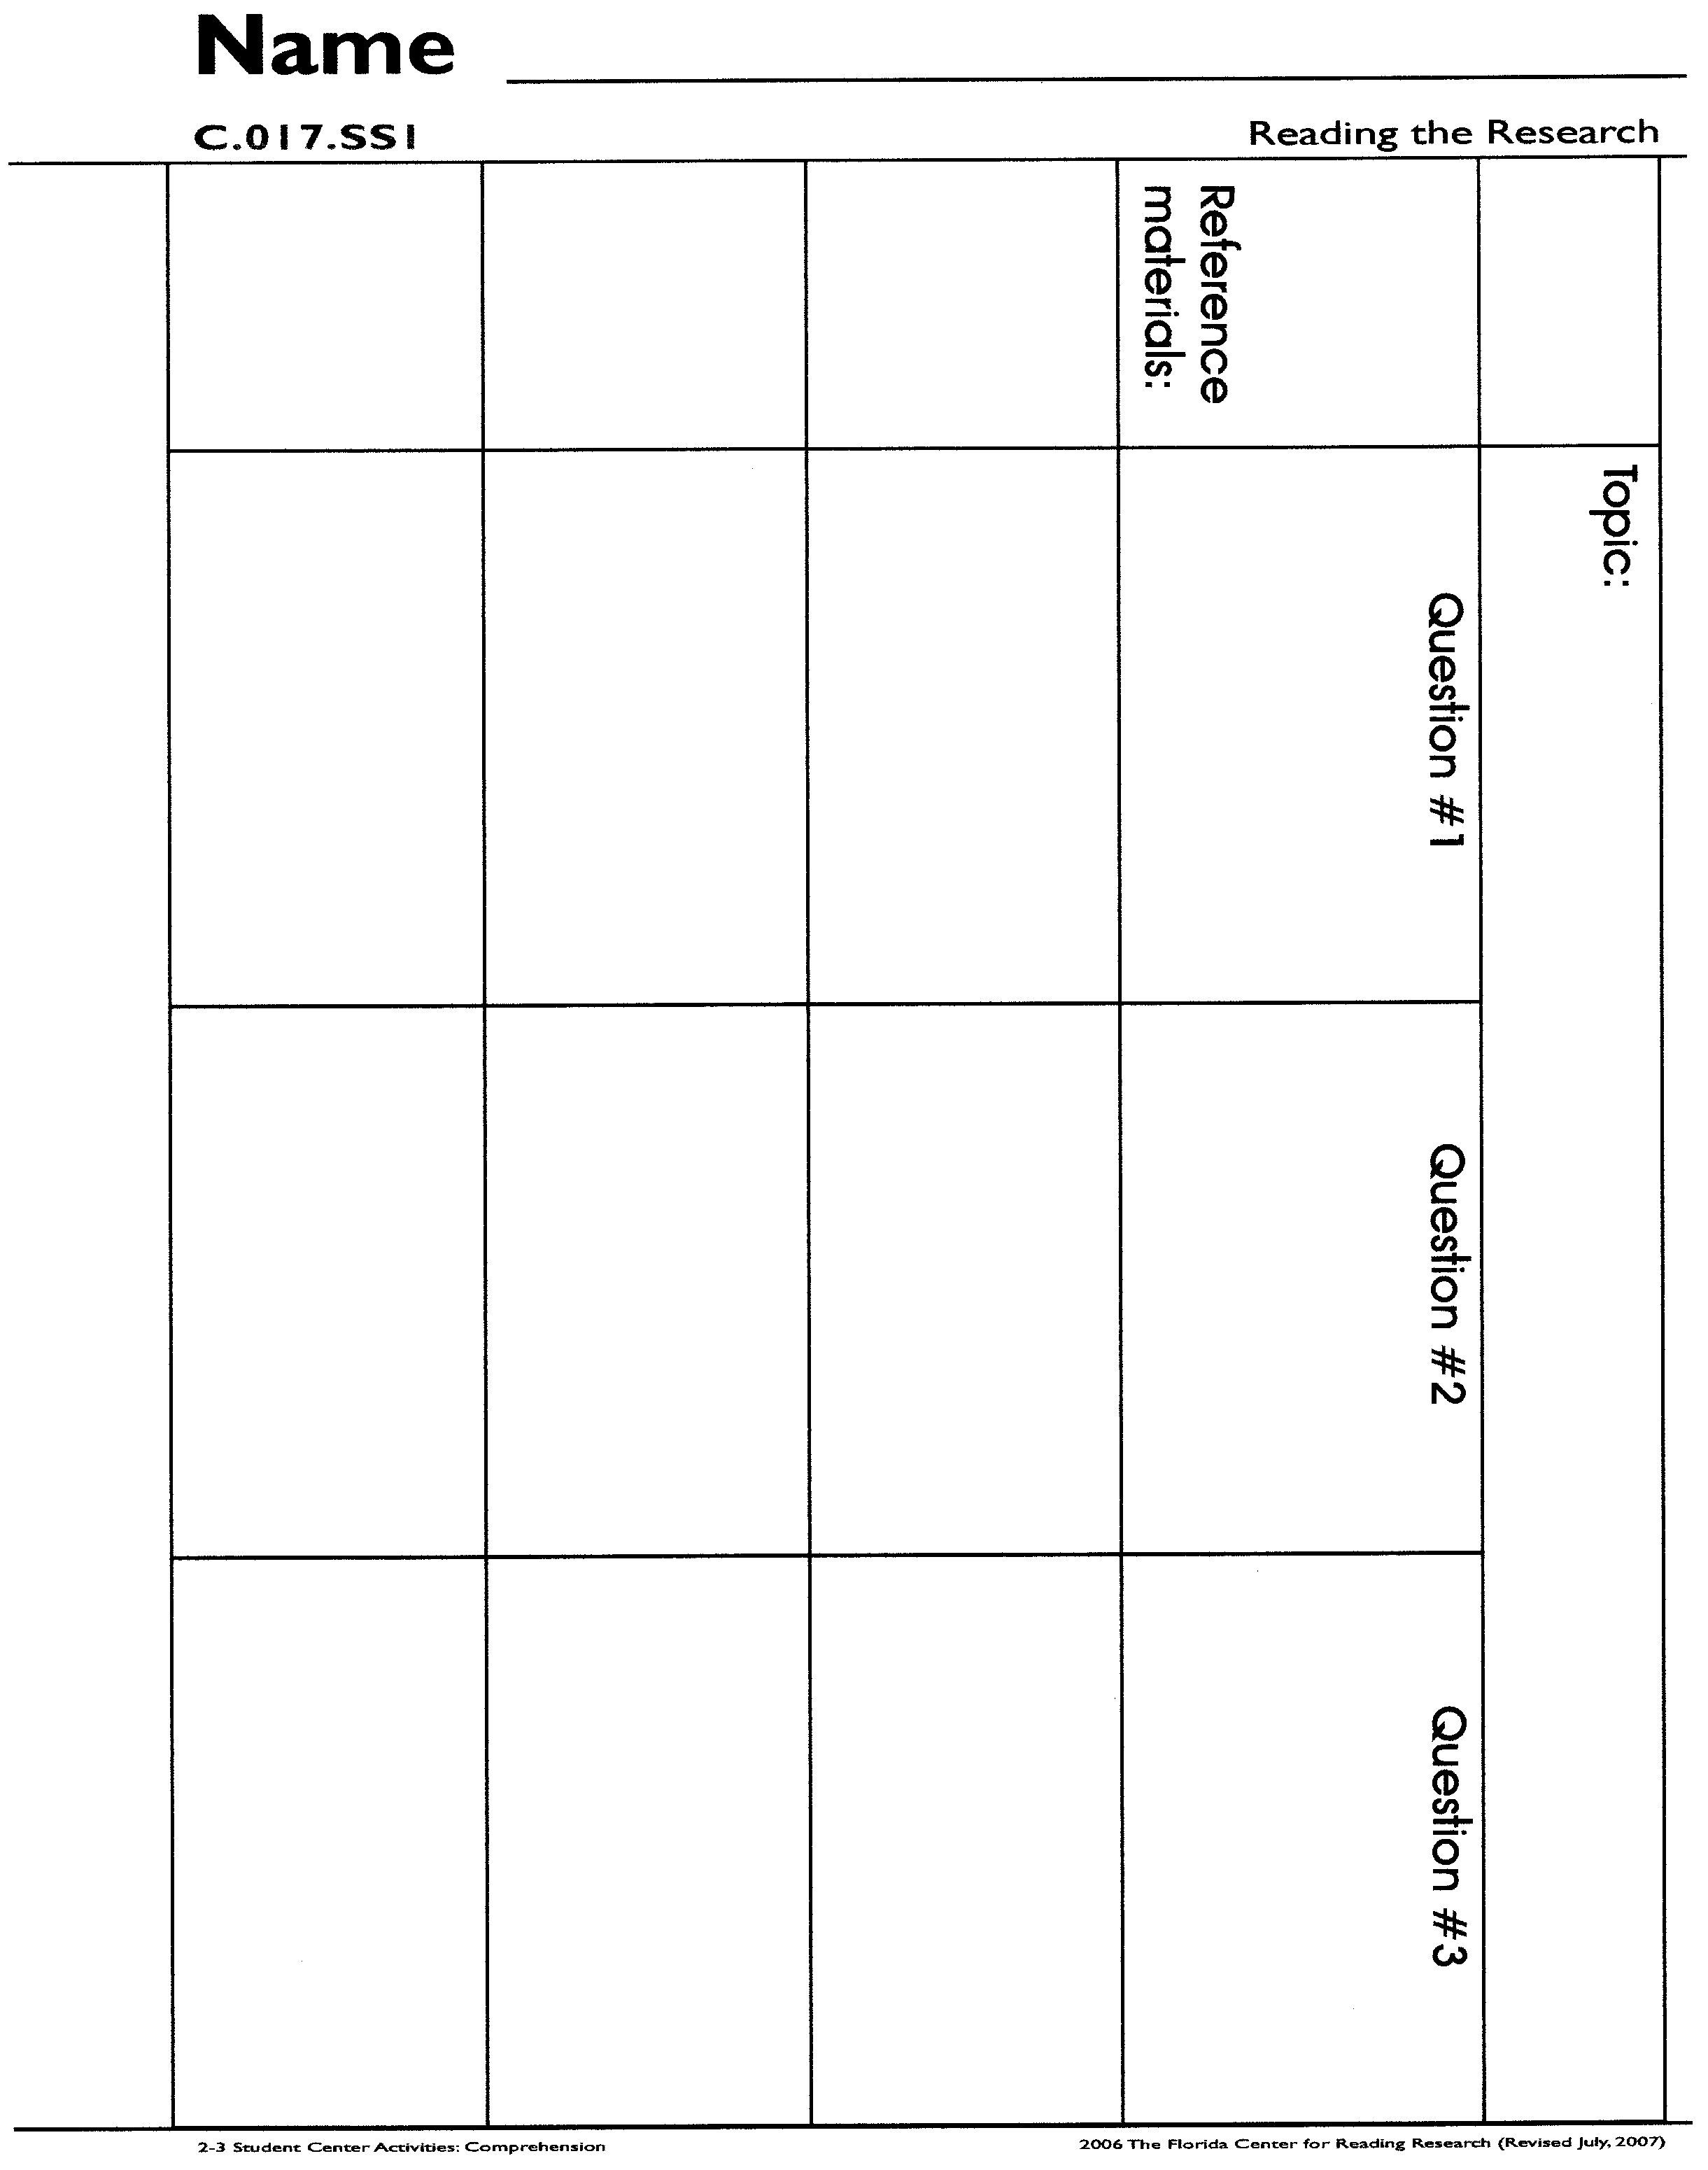 graphic organizers for research papers Research paper thesis graphic organizer - ecegmuedu.